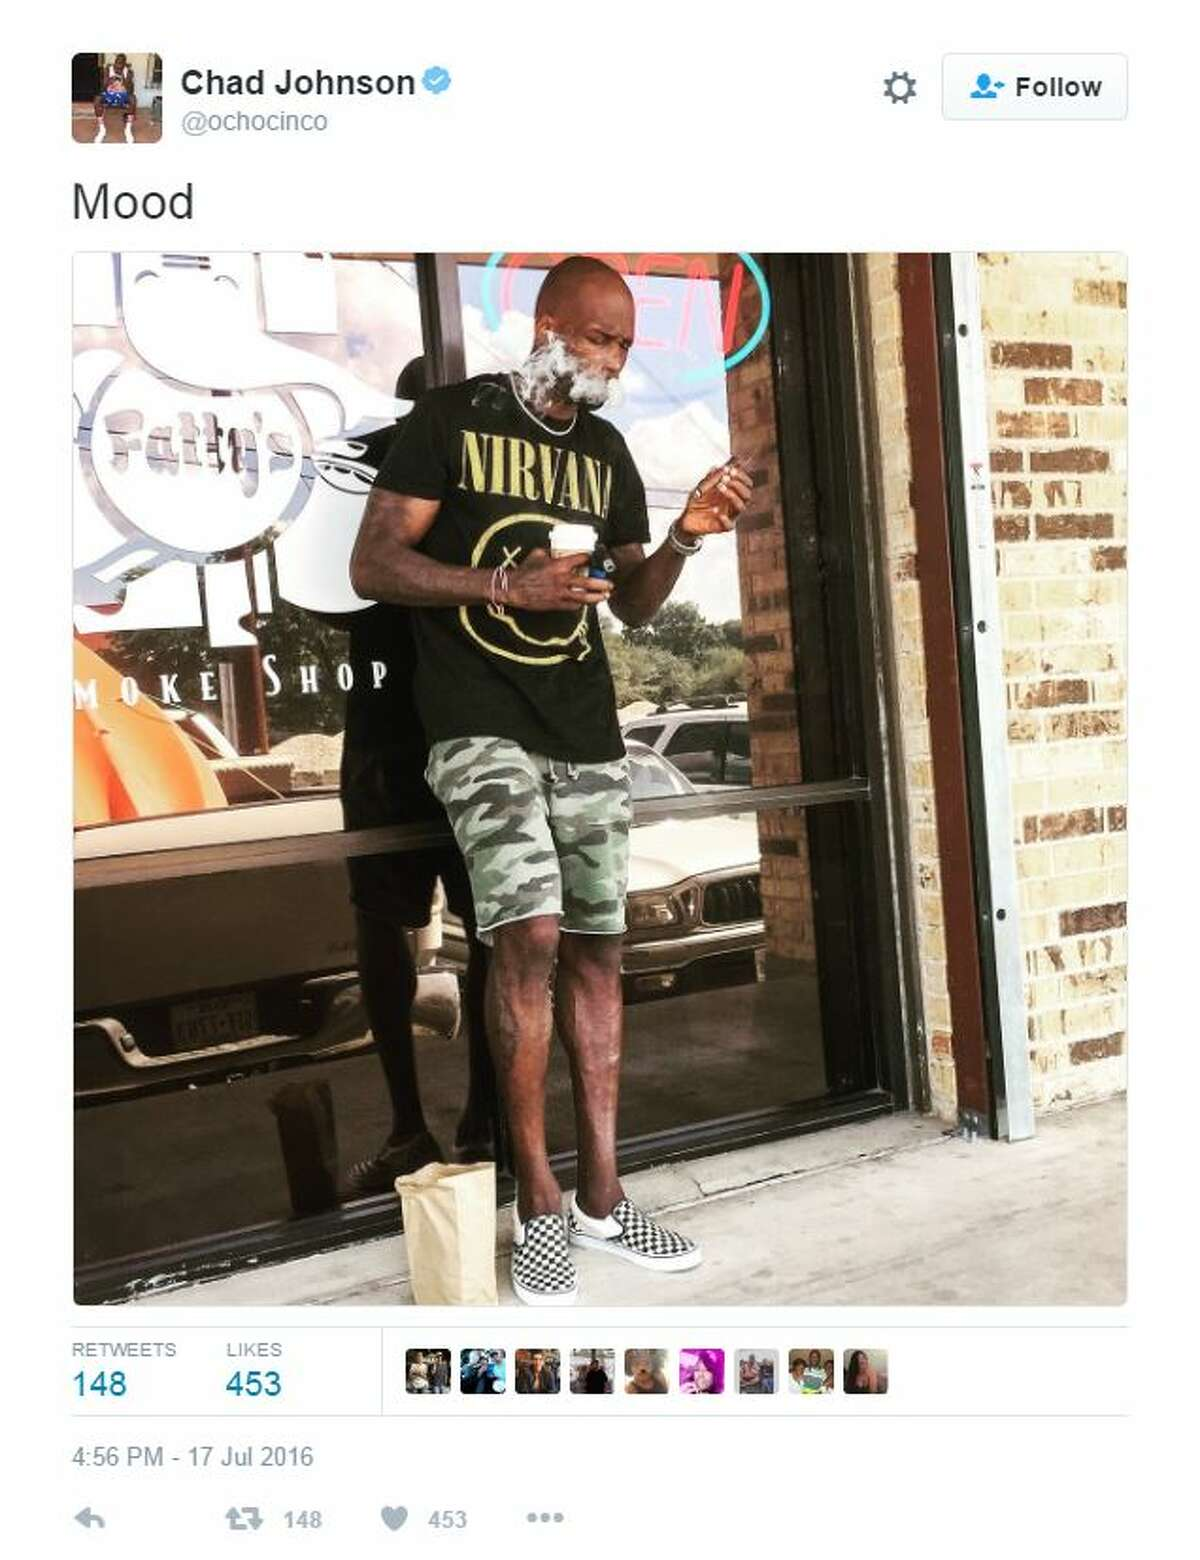 Former Dallas Cowboys star Chad Johnson, better known as